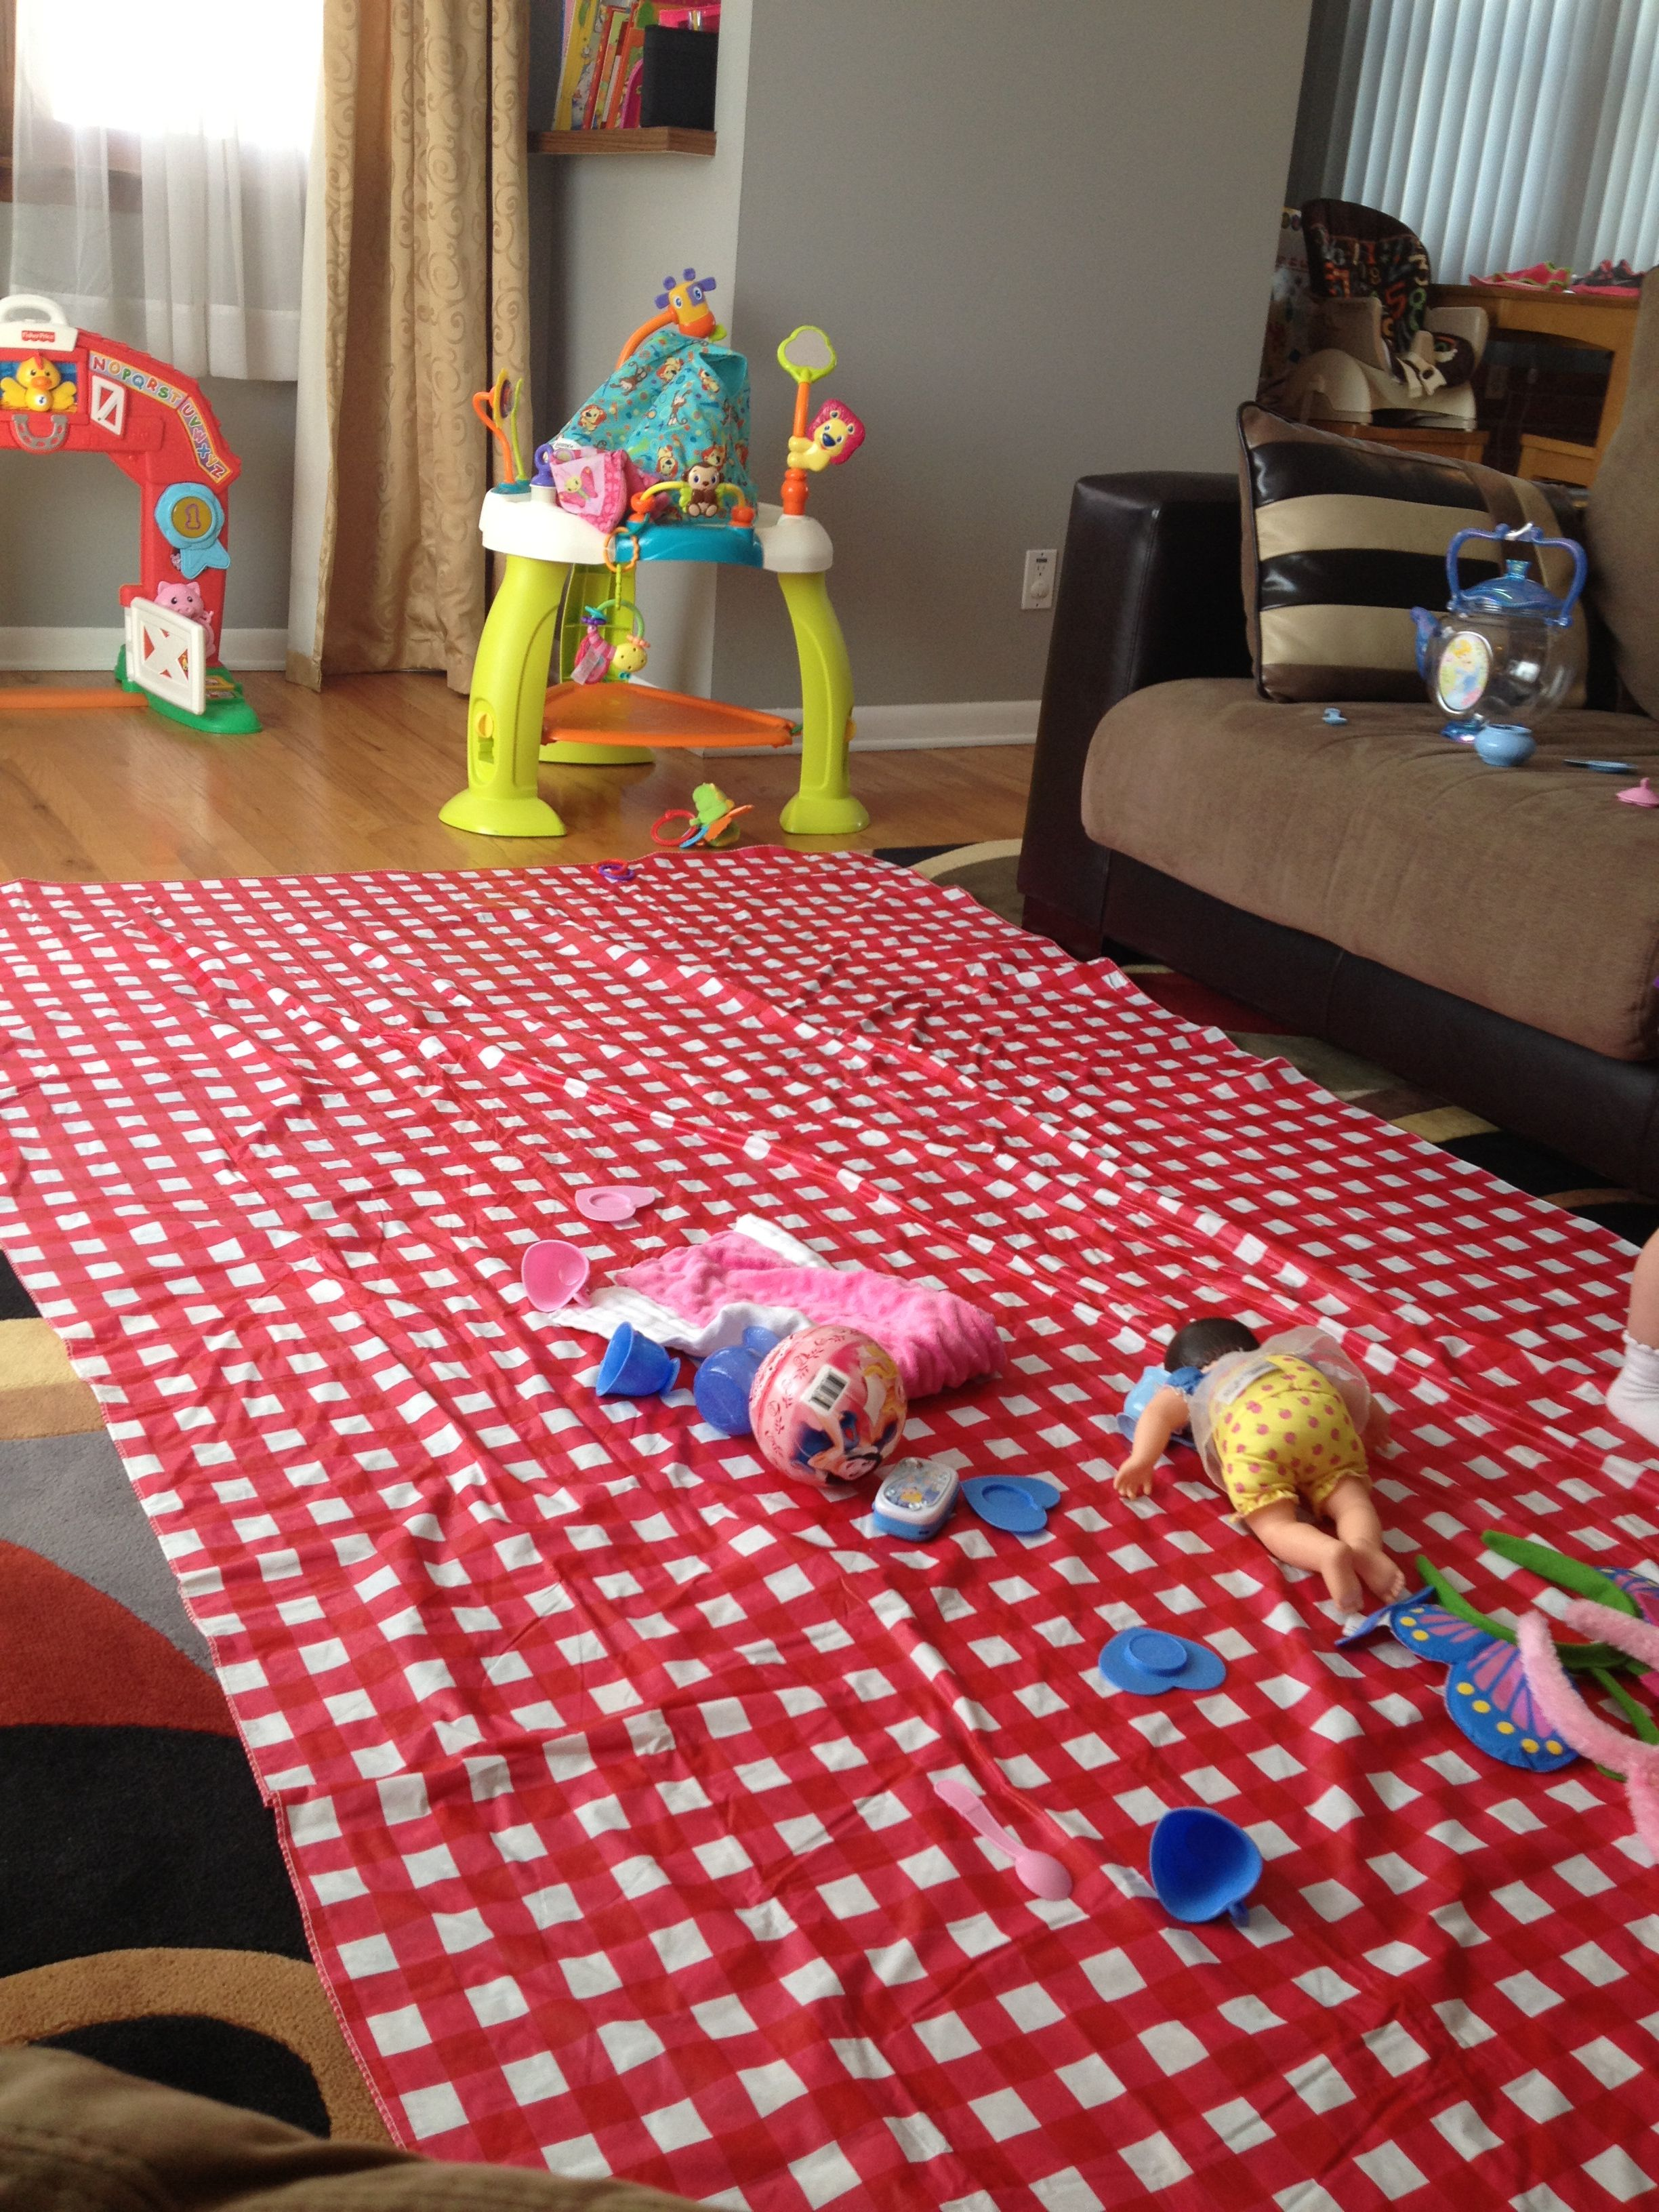 Potty Training Lay Down A Vinyl Table Cloth To Protect Your Carpet From Accidents You Could Even Sew A Few Together To Carpet Cover Baby Proofing Kids Rugs